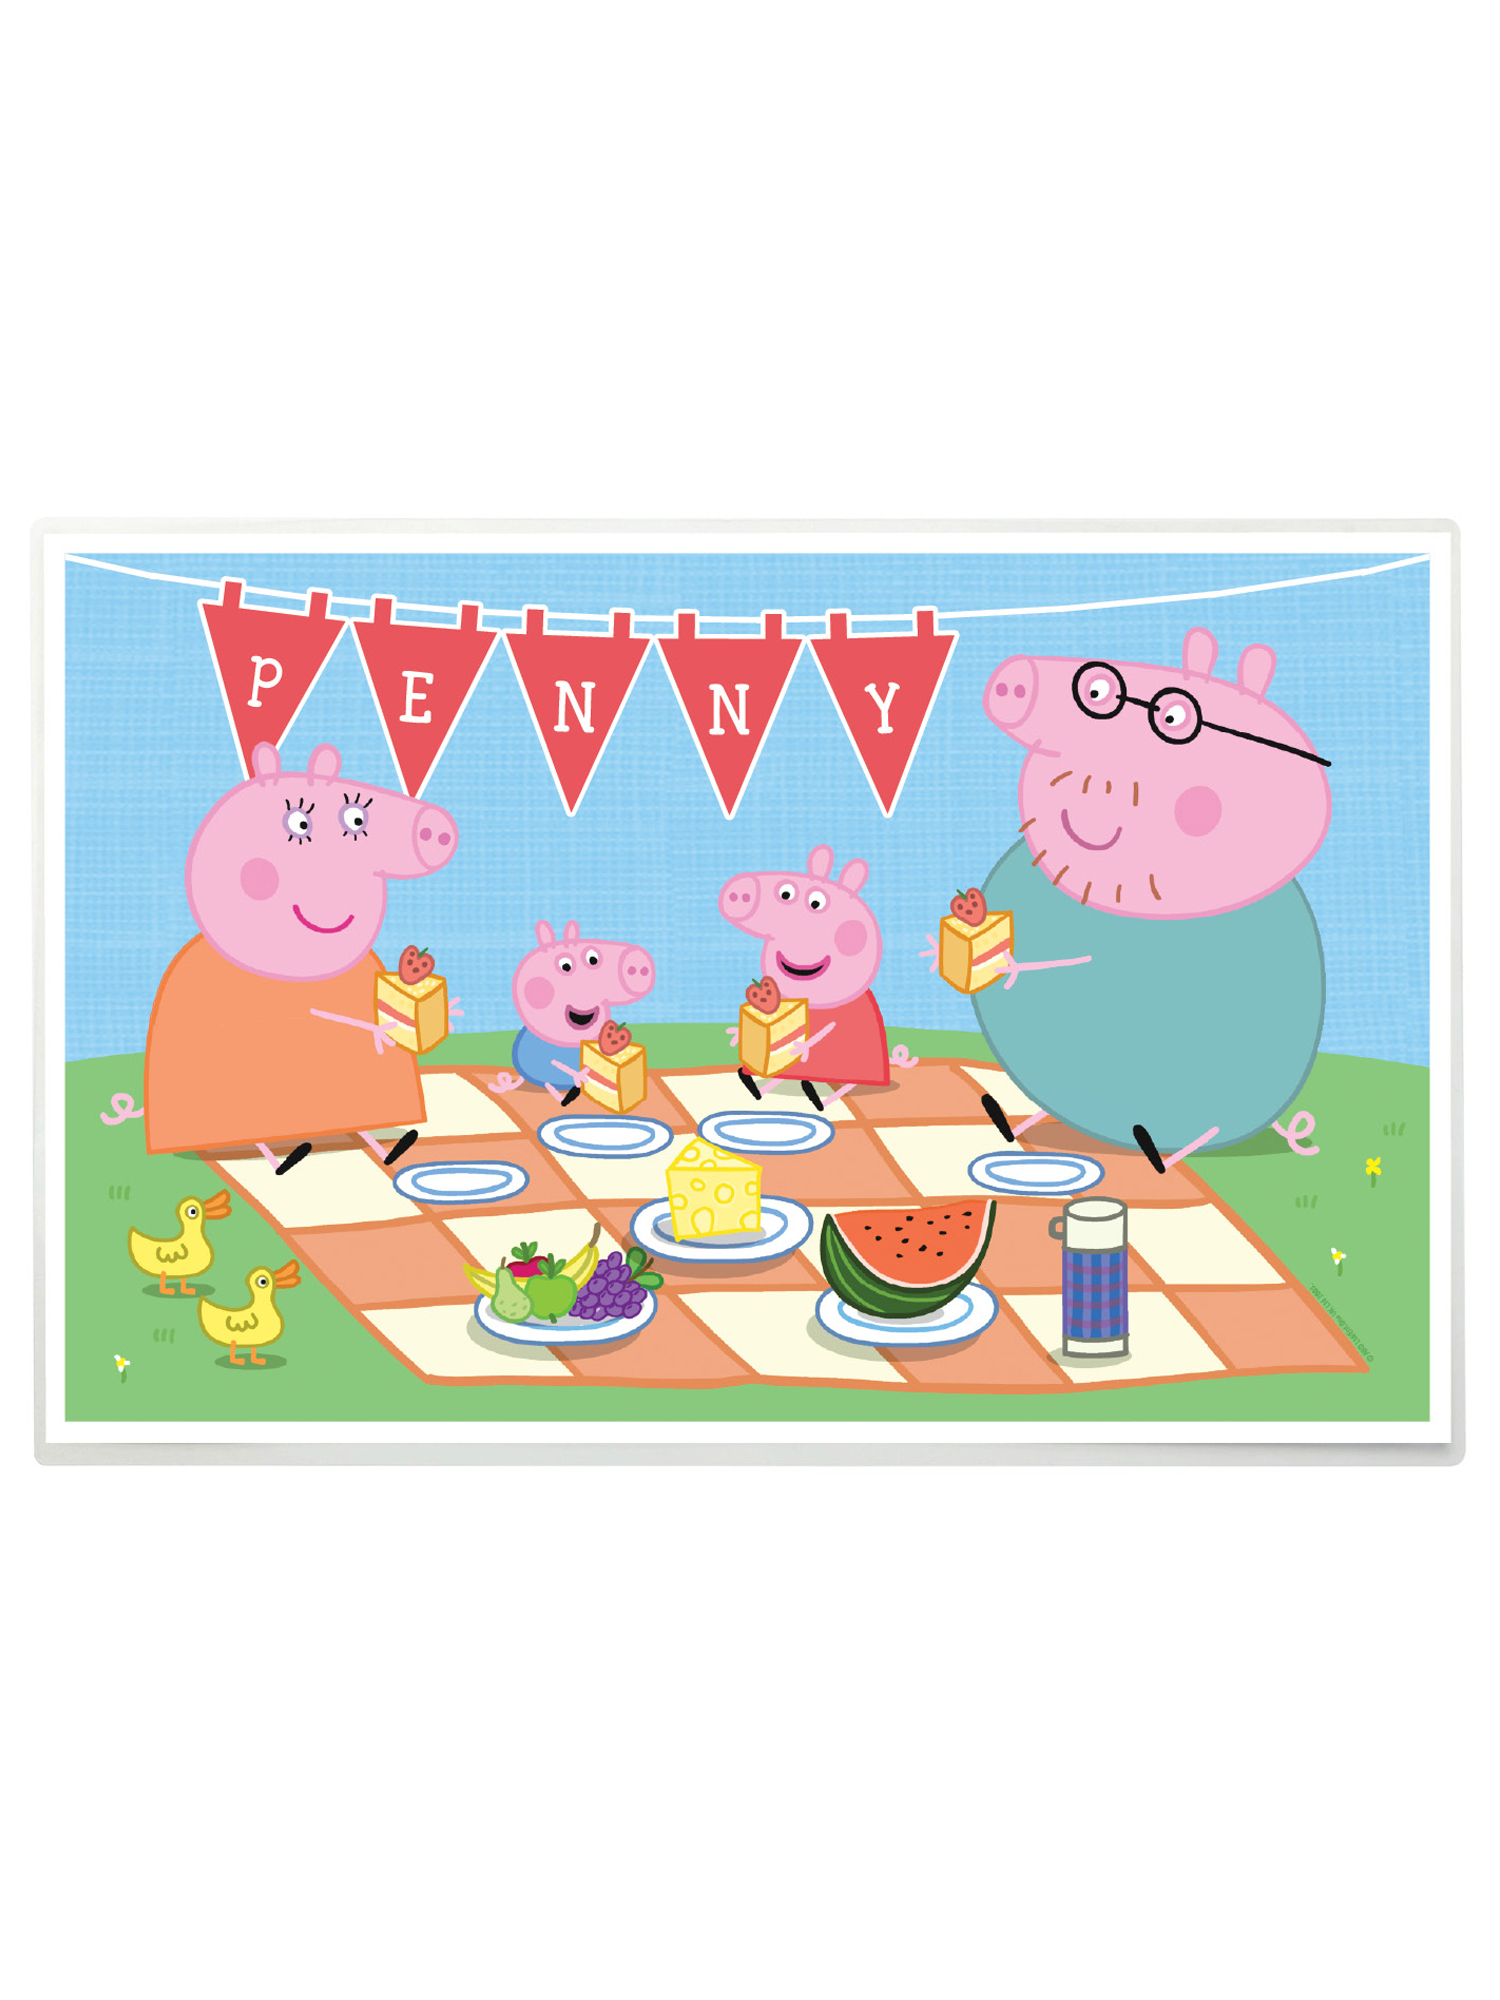 Cuisine Peppa Pig Personalized Peppa Pig Family Picnic Placemat